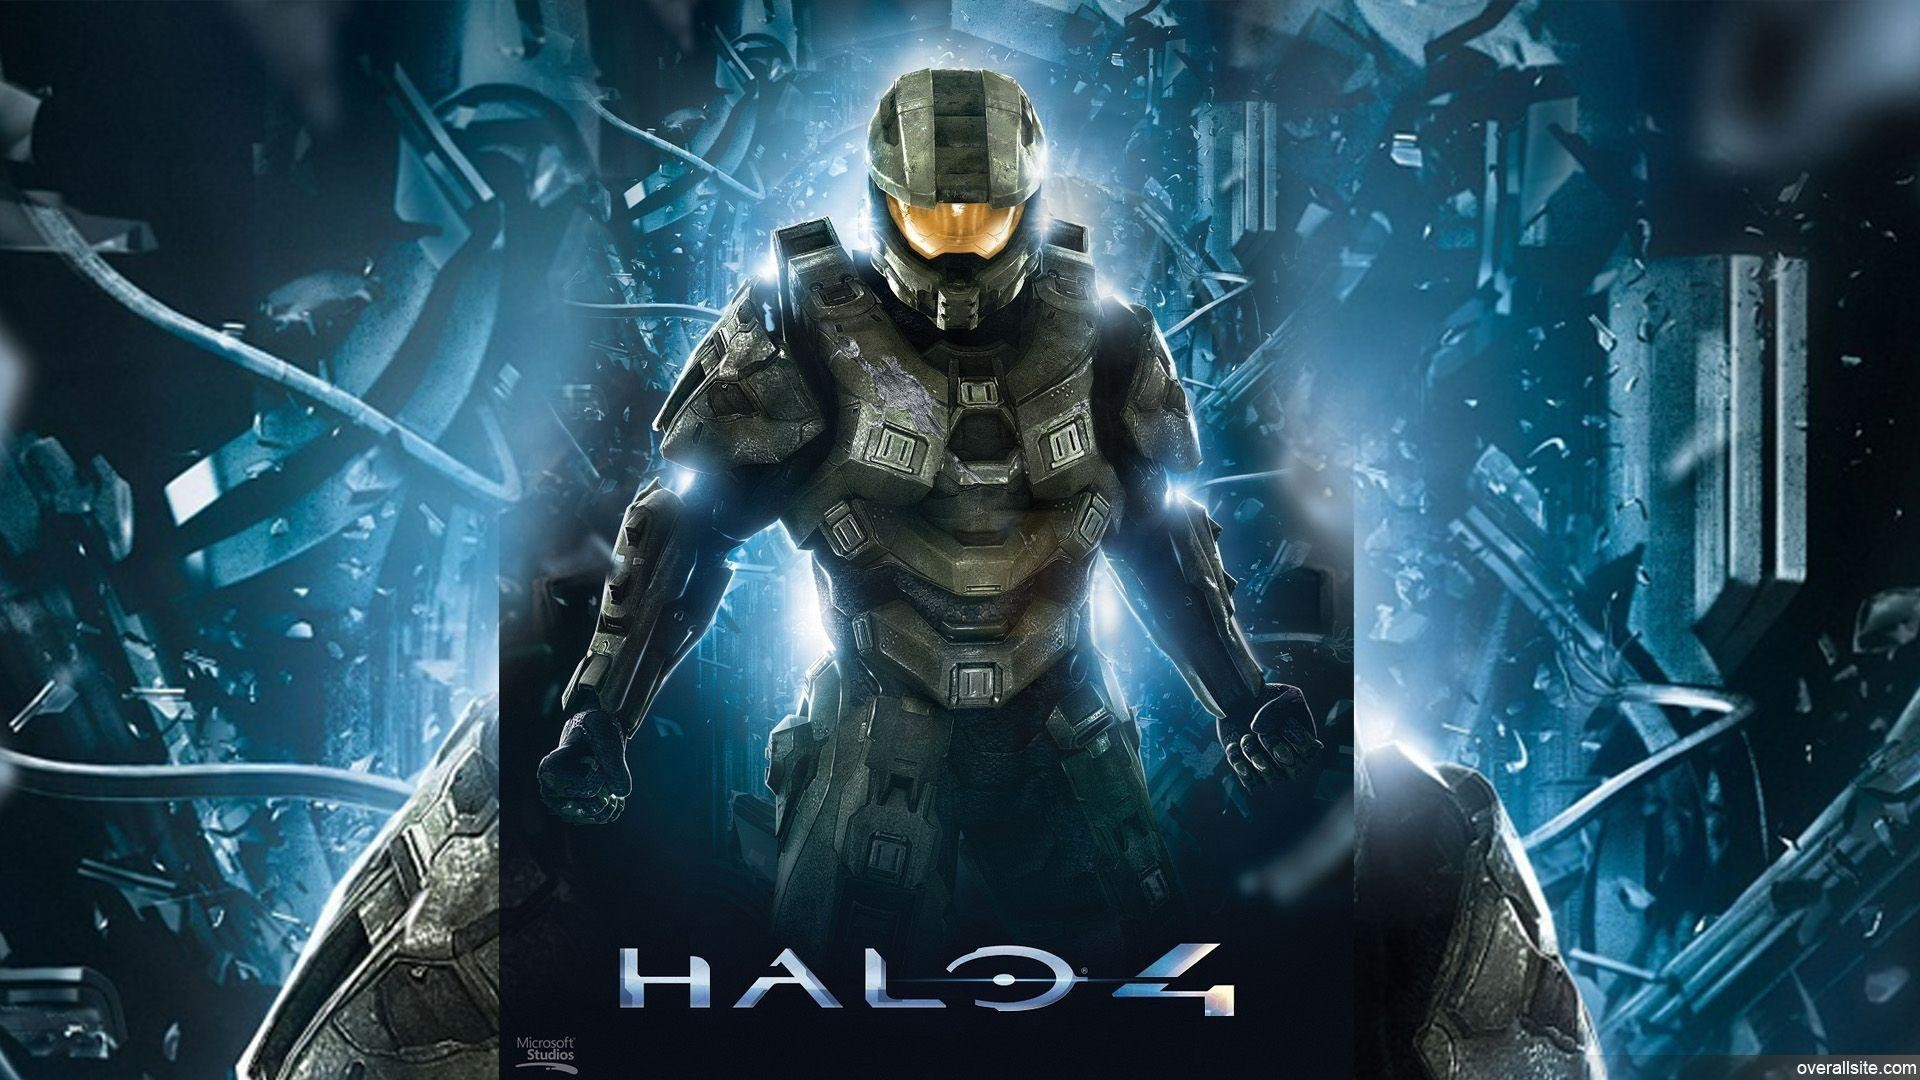 Wallpapers For > Halo 4 Unsc Wallpaper Hd